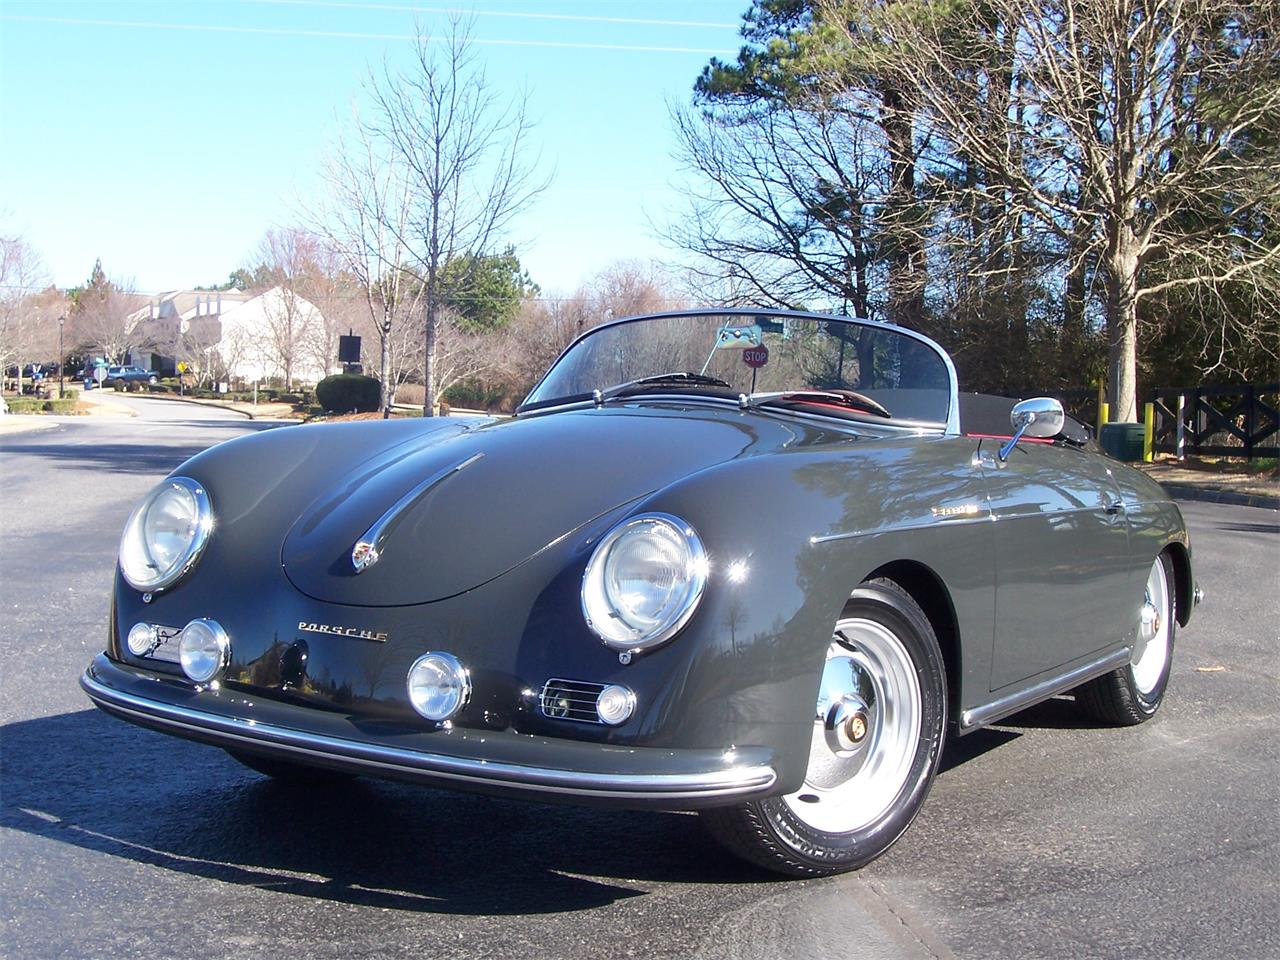 1957 Porsche 356 (CC-1317508) for sale in Alpharetta, Georgia